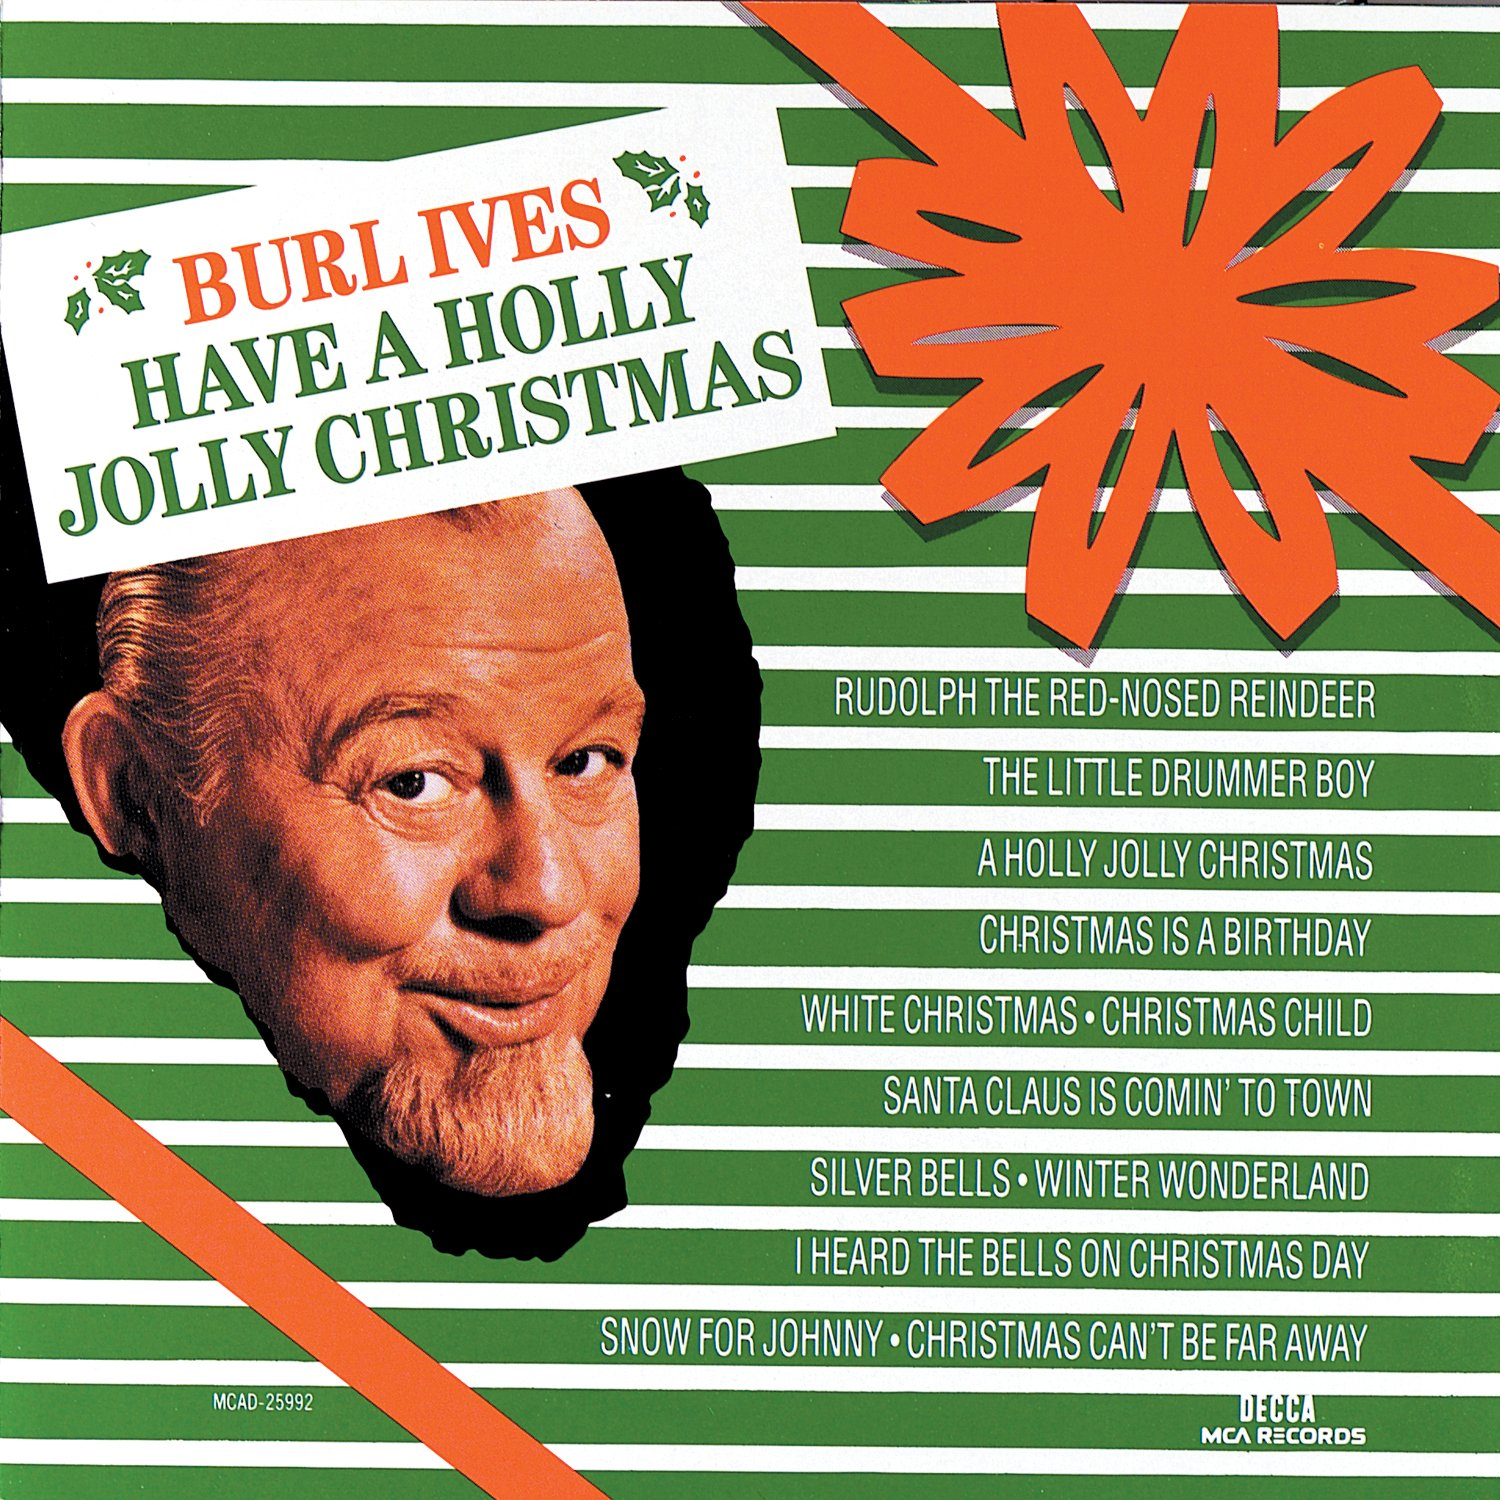 burl ives have a holly jolly christmas amazoncom music - Have A Holly Jolly Christmas